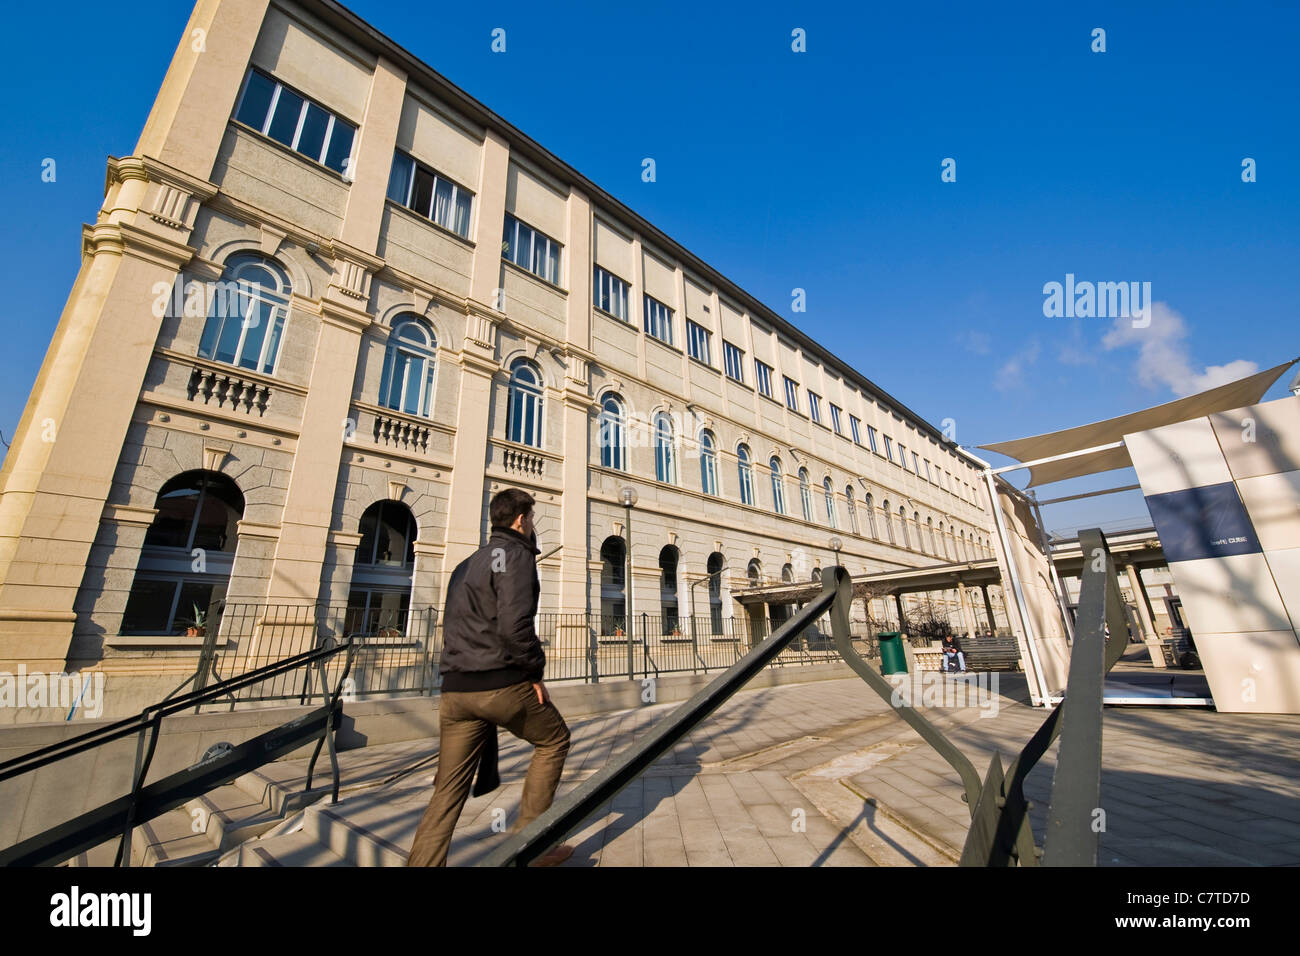 Italy, Lombardy, Milan, the faculty of engineering, Polytechnic university - Stock Image